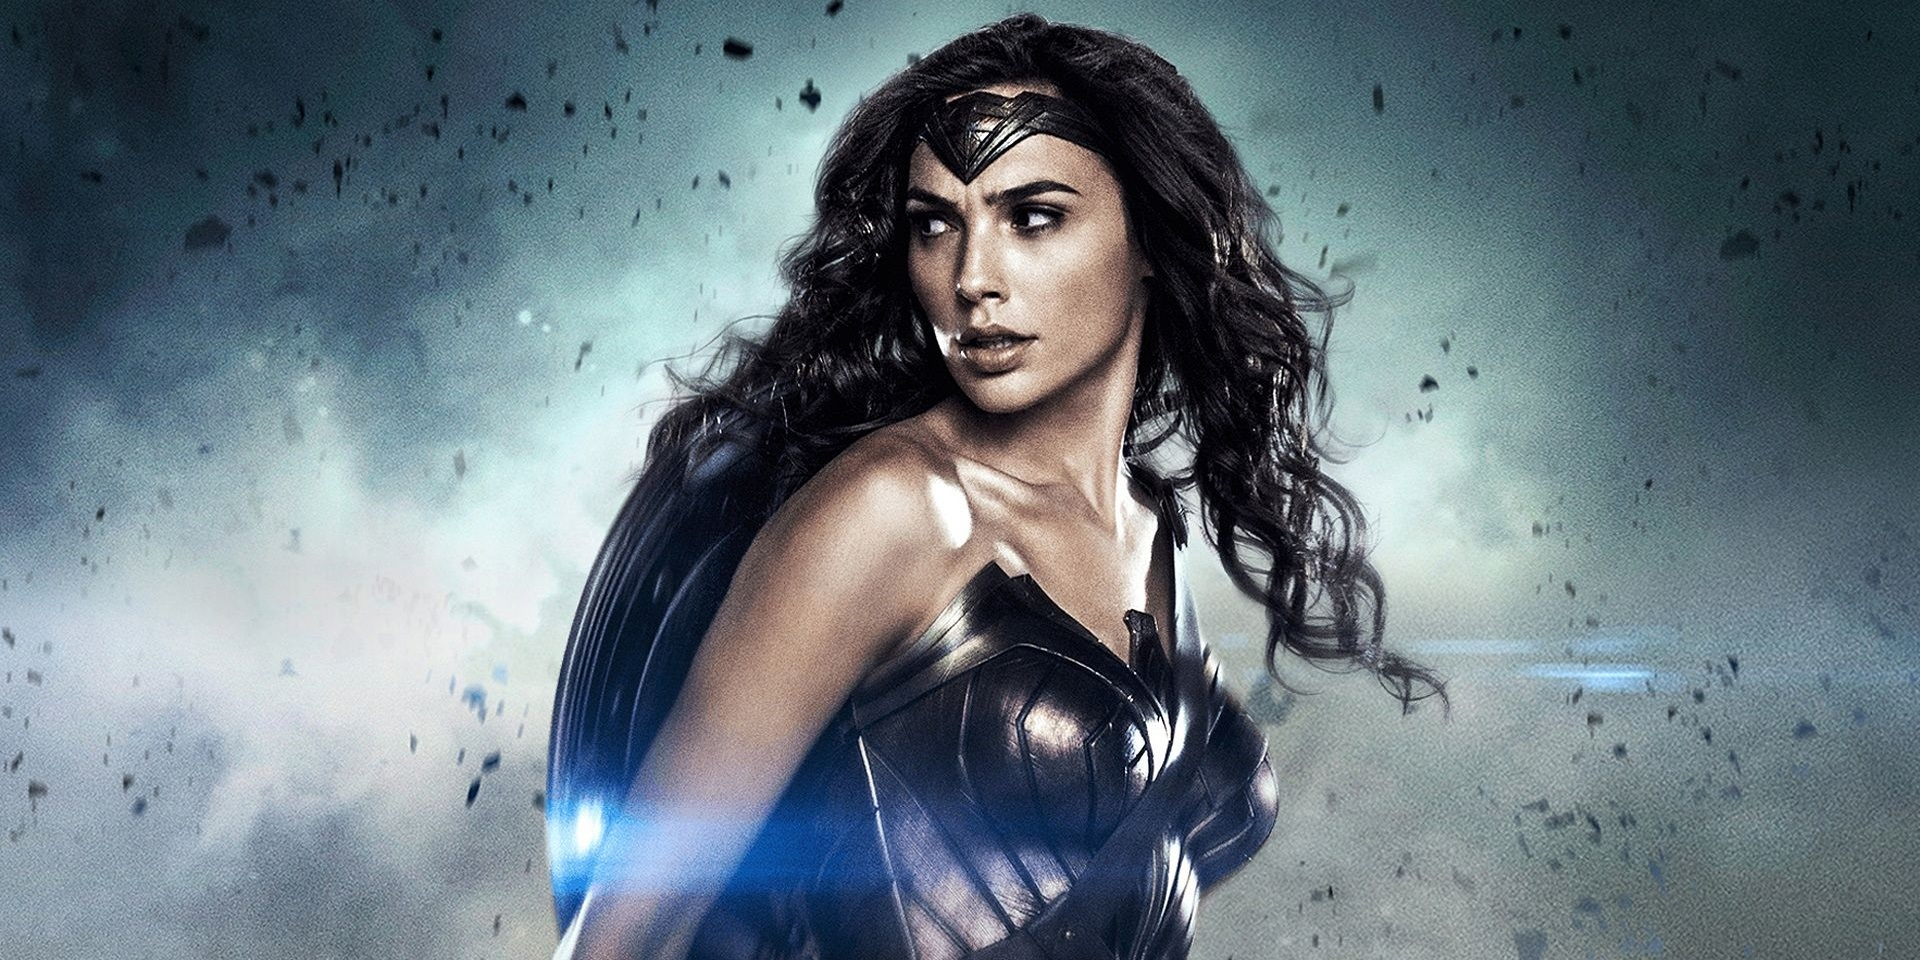 Wonder Woman Poster Revealed at Licensing Expo 2016